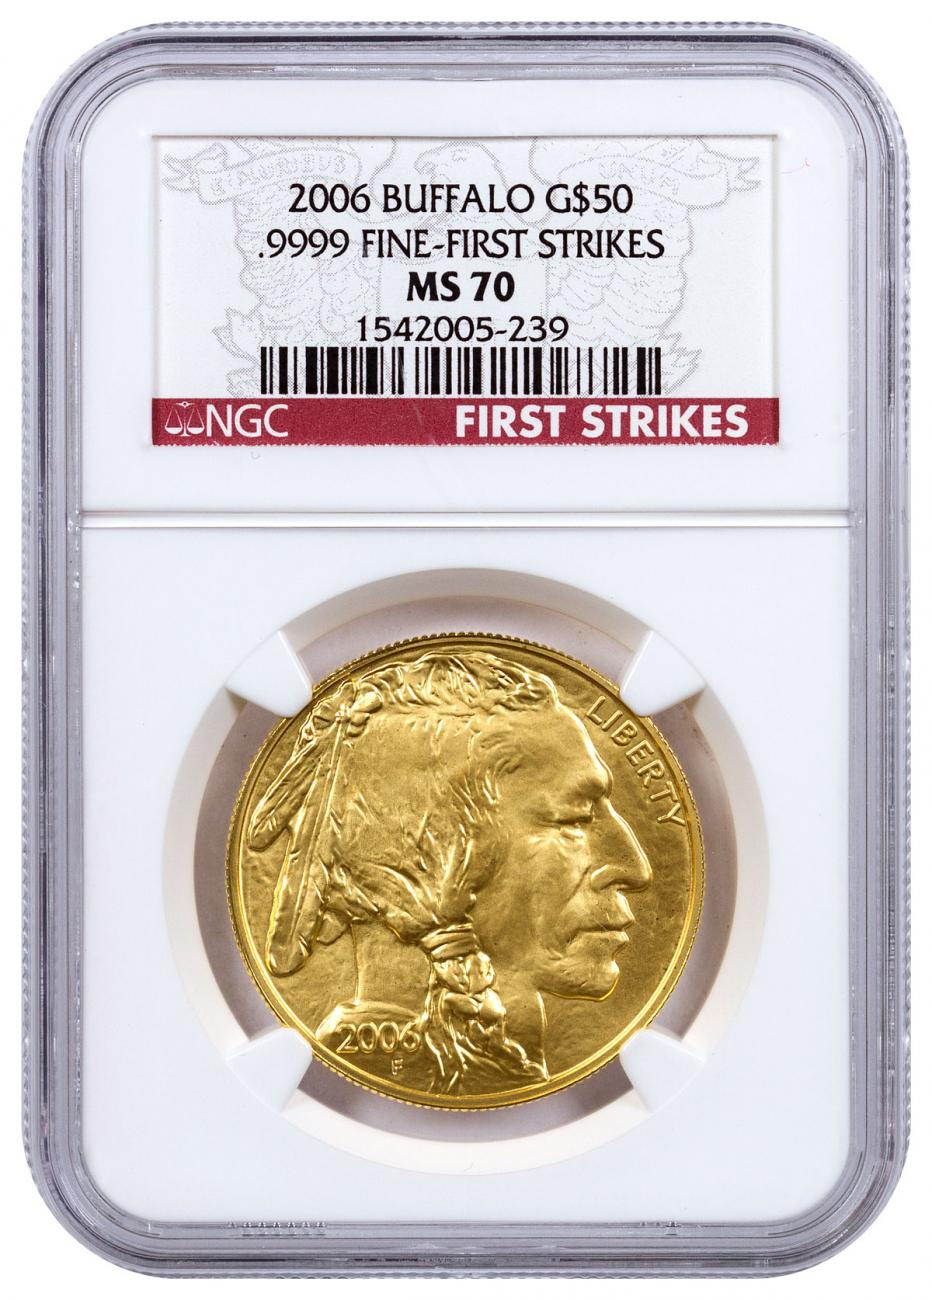 2006 1 oz Gold Buffalo $50 Coin NGC MS70 FS